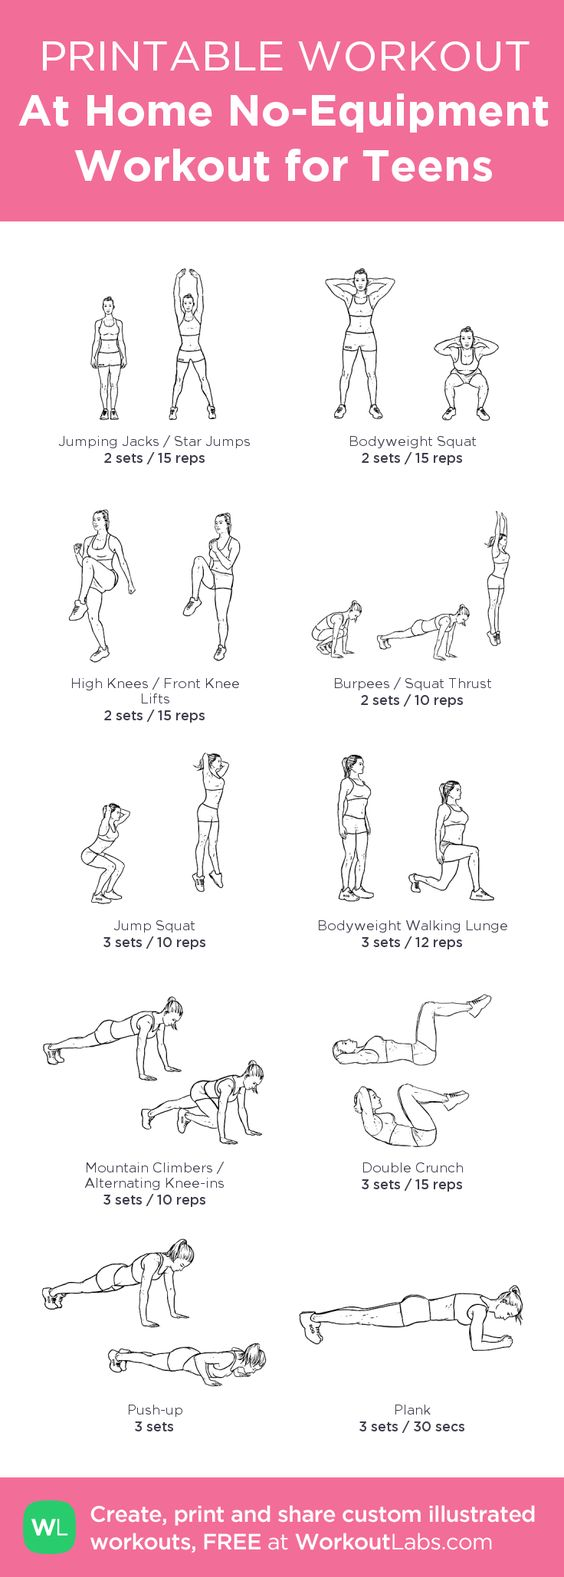 At Home No-Equipment Workout for Teens #houseofamerie #changewithmetoday